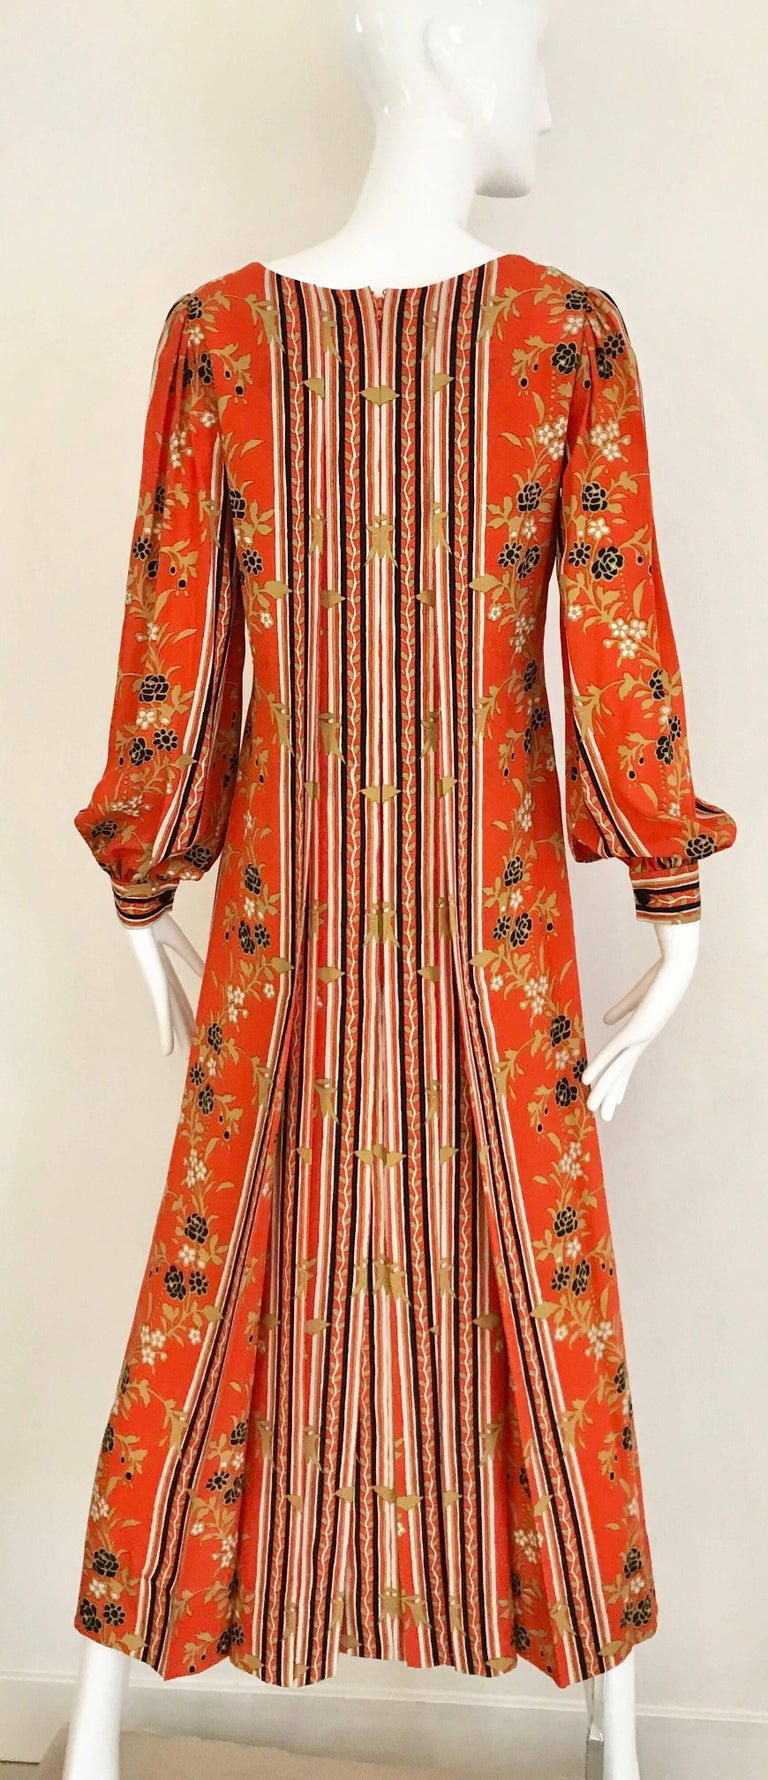 1970s GALANOS Orange and Black Floral Silk Print Dress with Vest  In Good Condition For Sale In Beverly Hills, CA